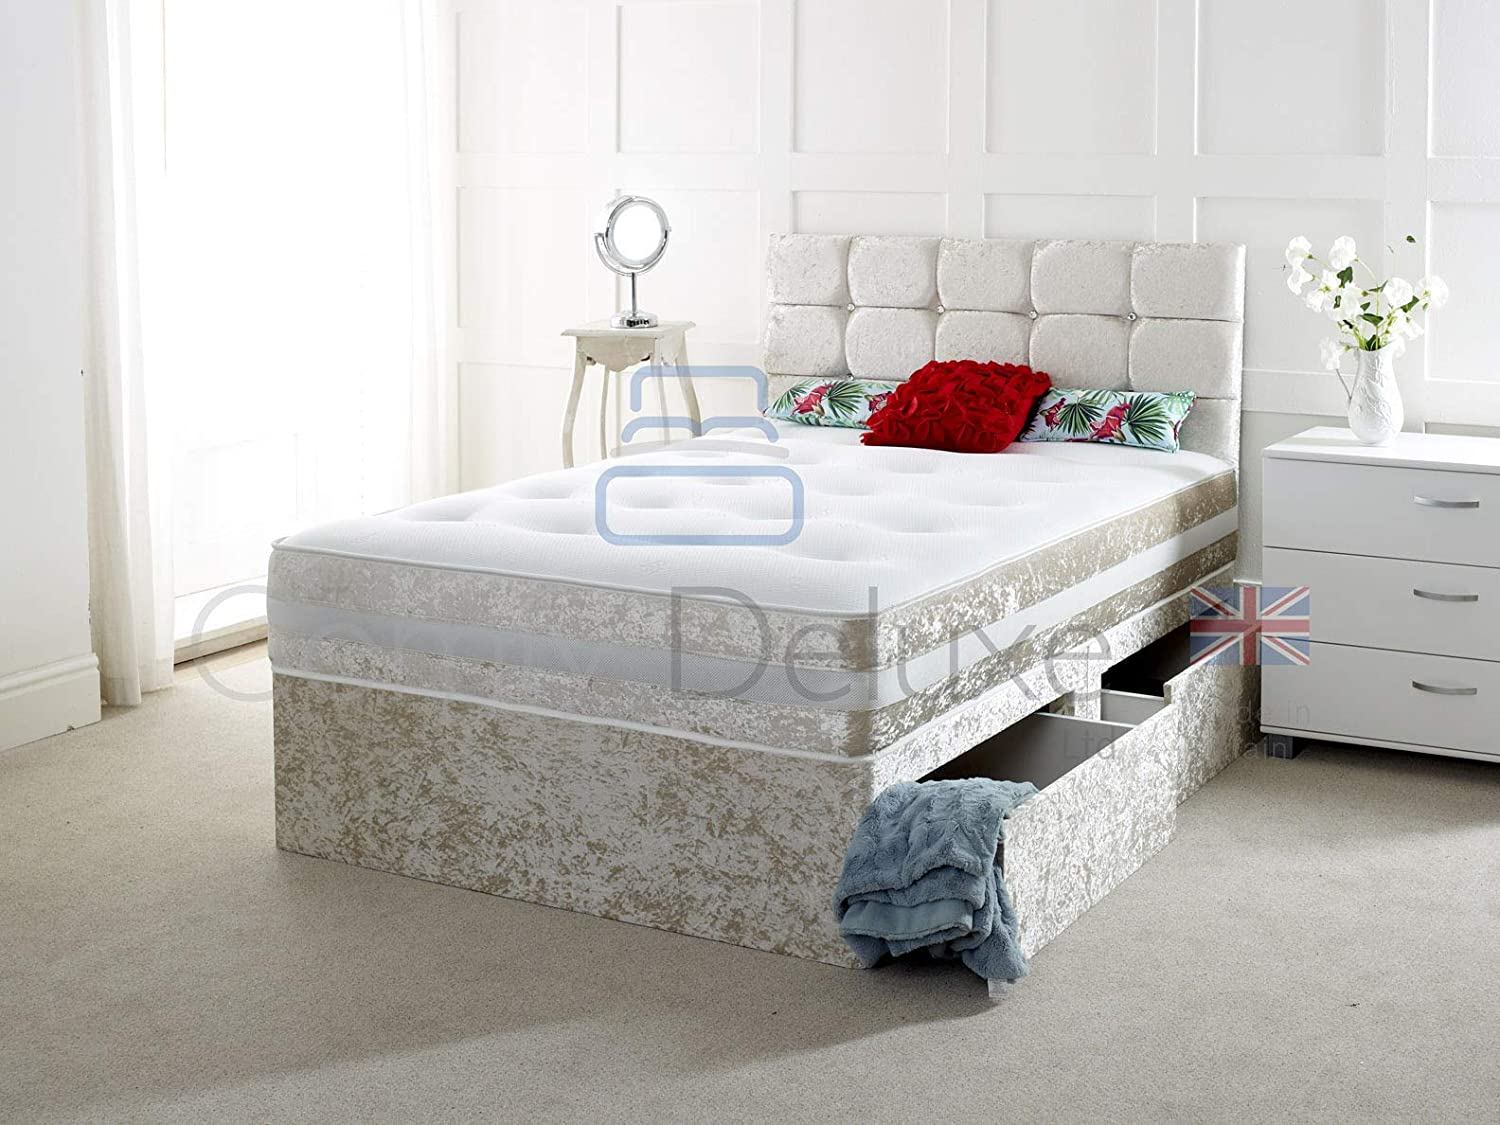 Crushed Velvet Divan Bed with | Mattress | HEADBOARD | Storage Drawers (2FT6 O Drawers, Black Crush) Comfy Deluxe LTD